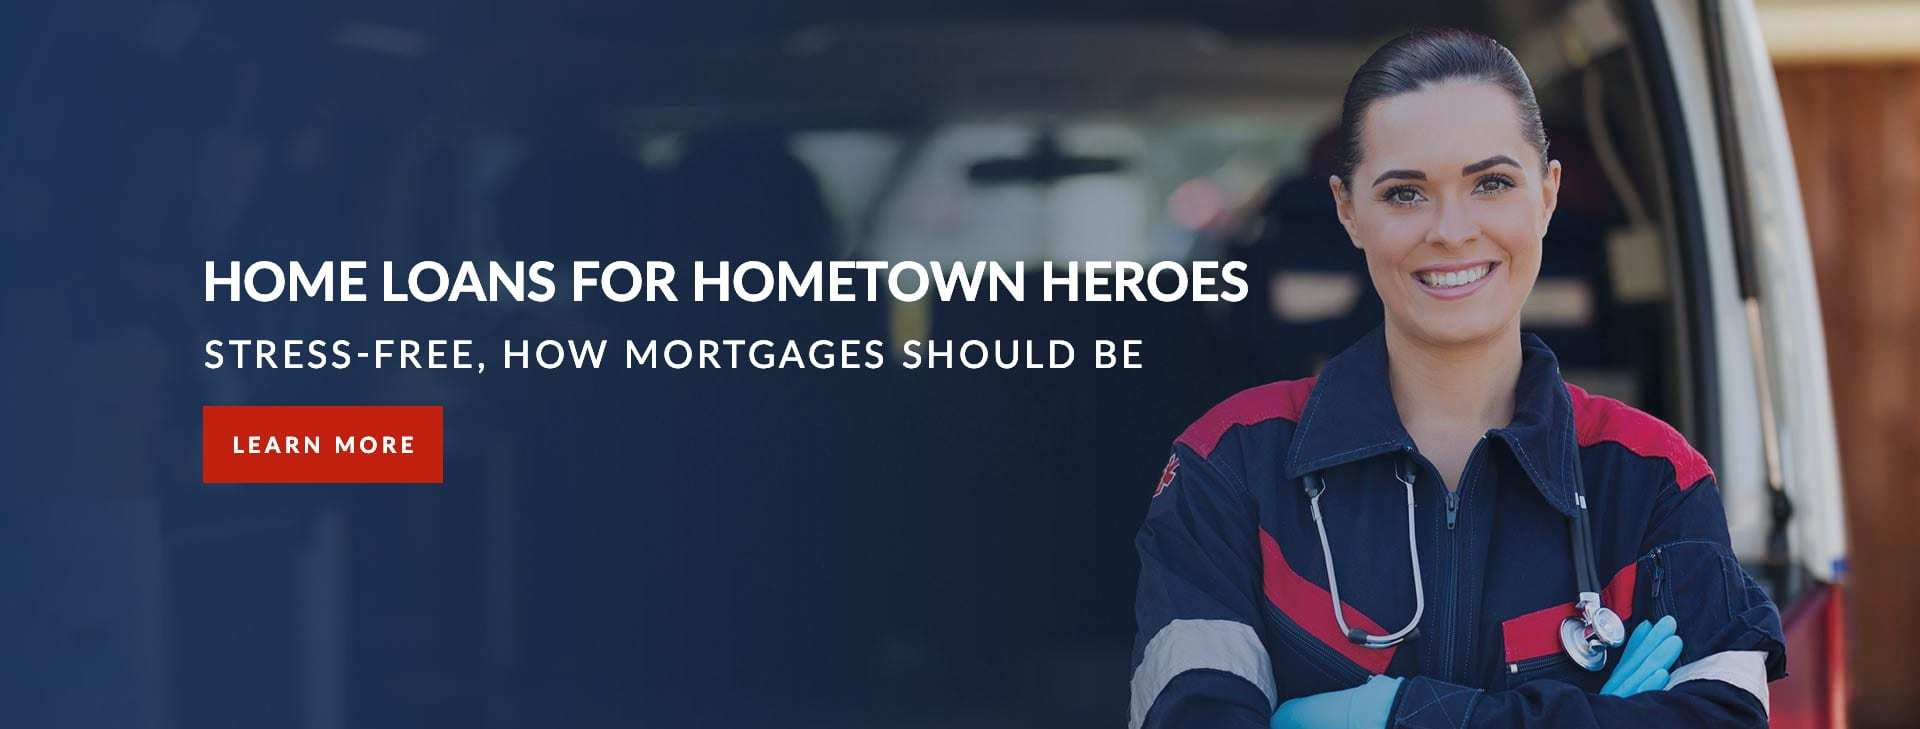 home loans for first responders